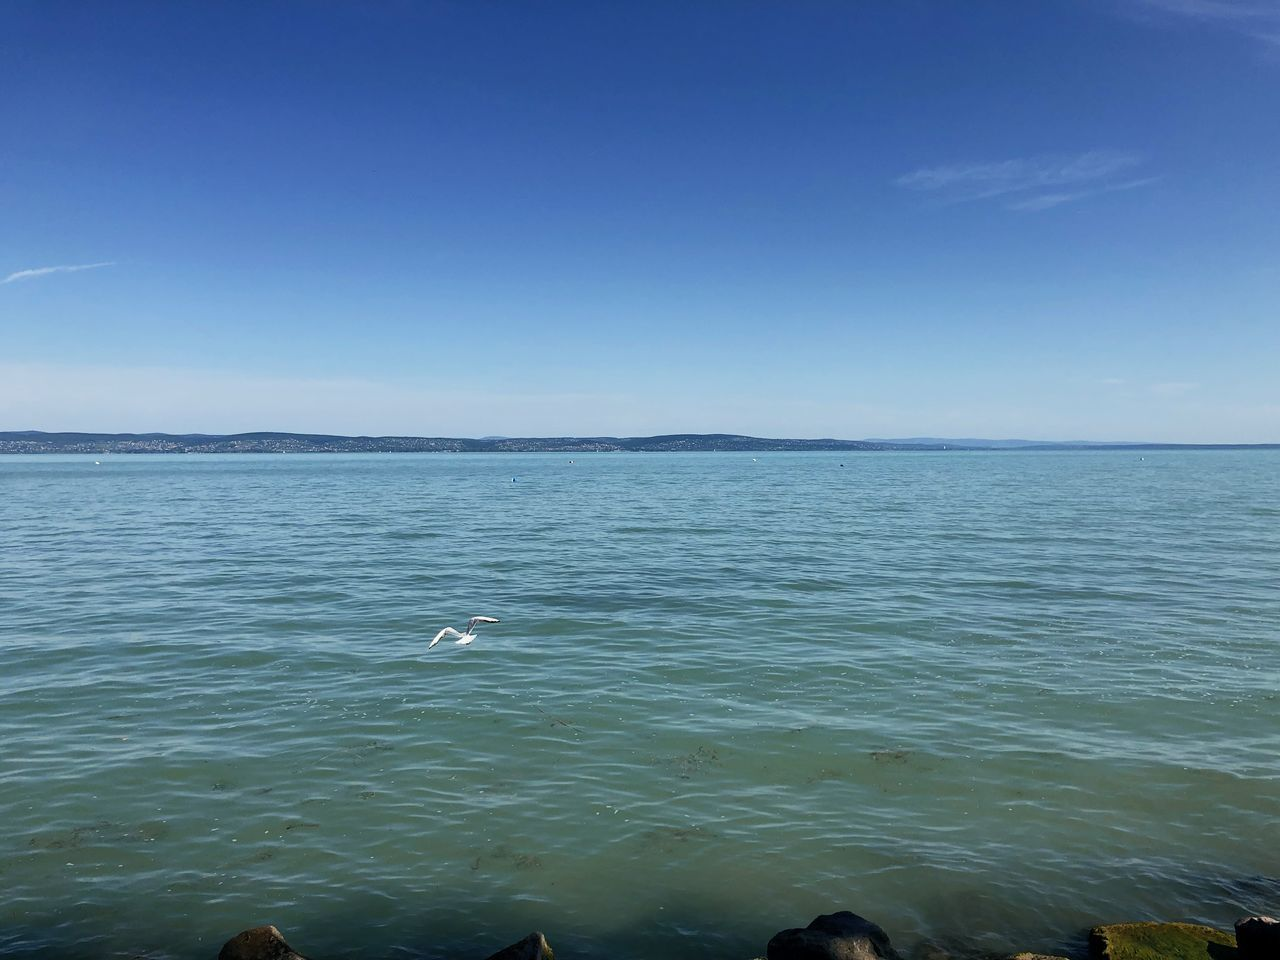 VIEW OF SEA AGAINST CLEAR BLUE SKY